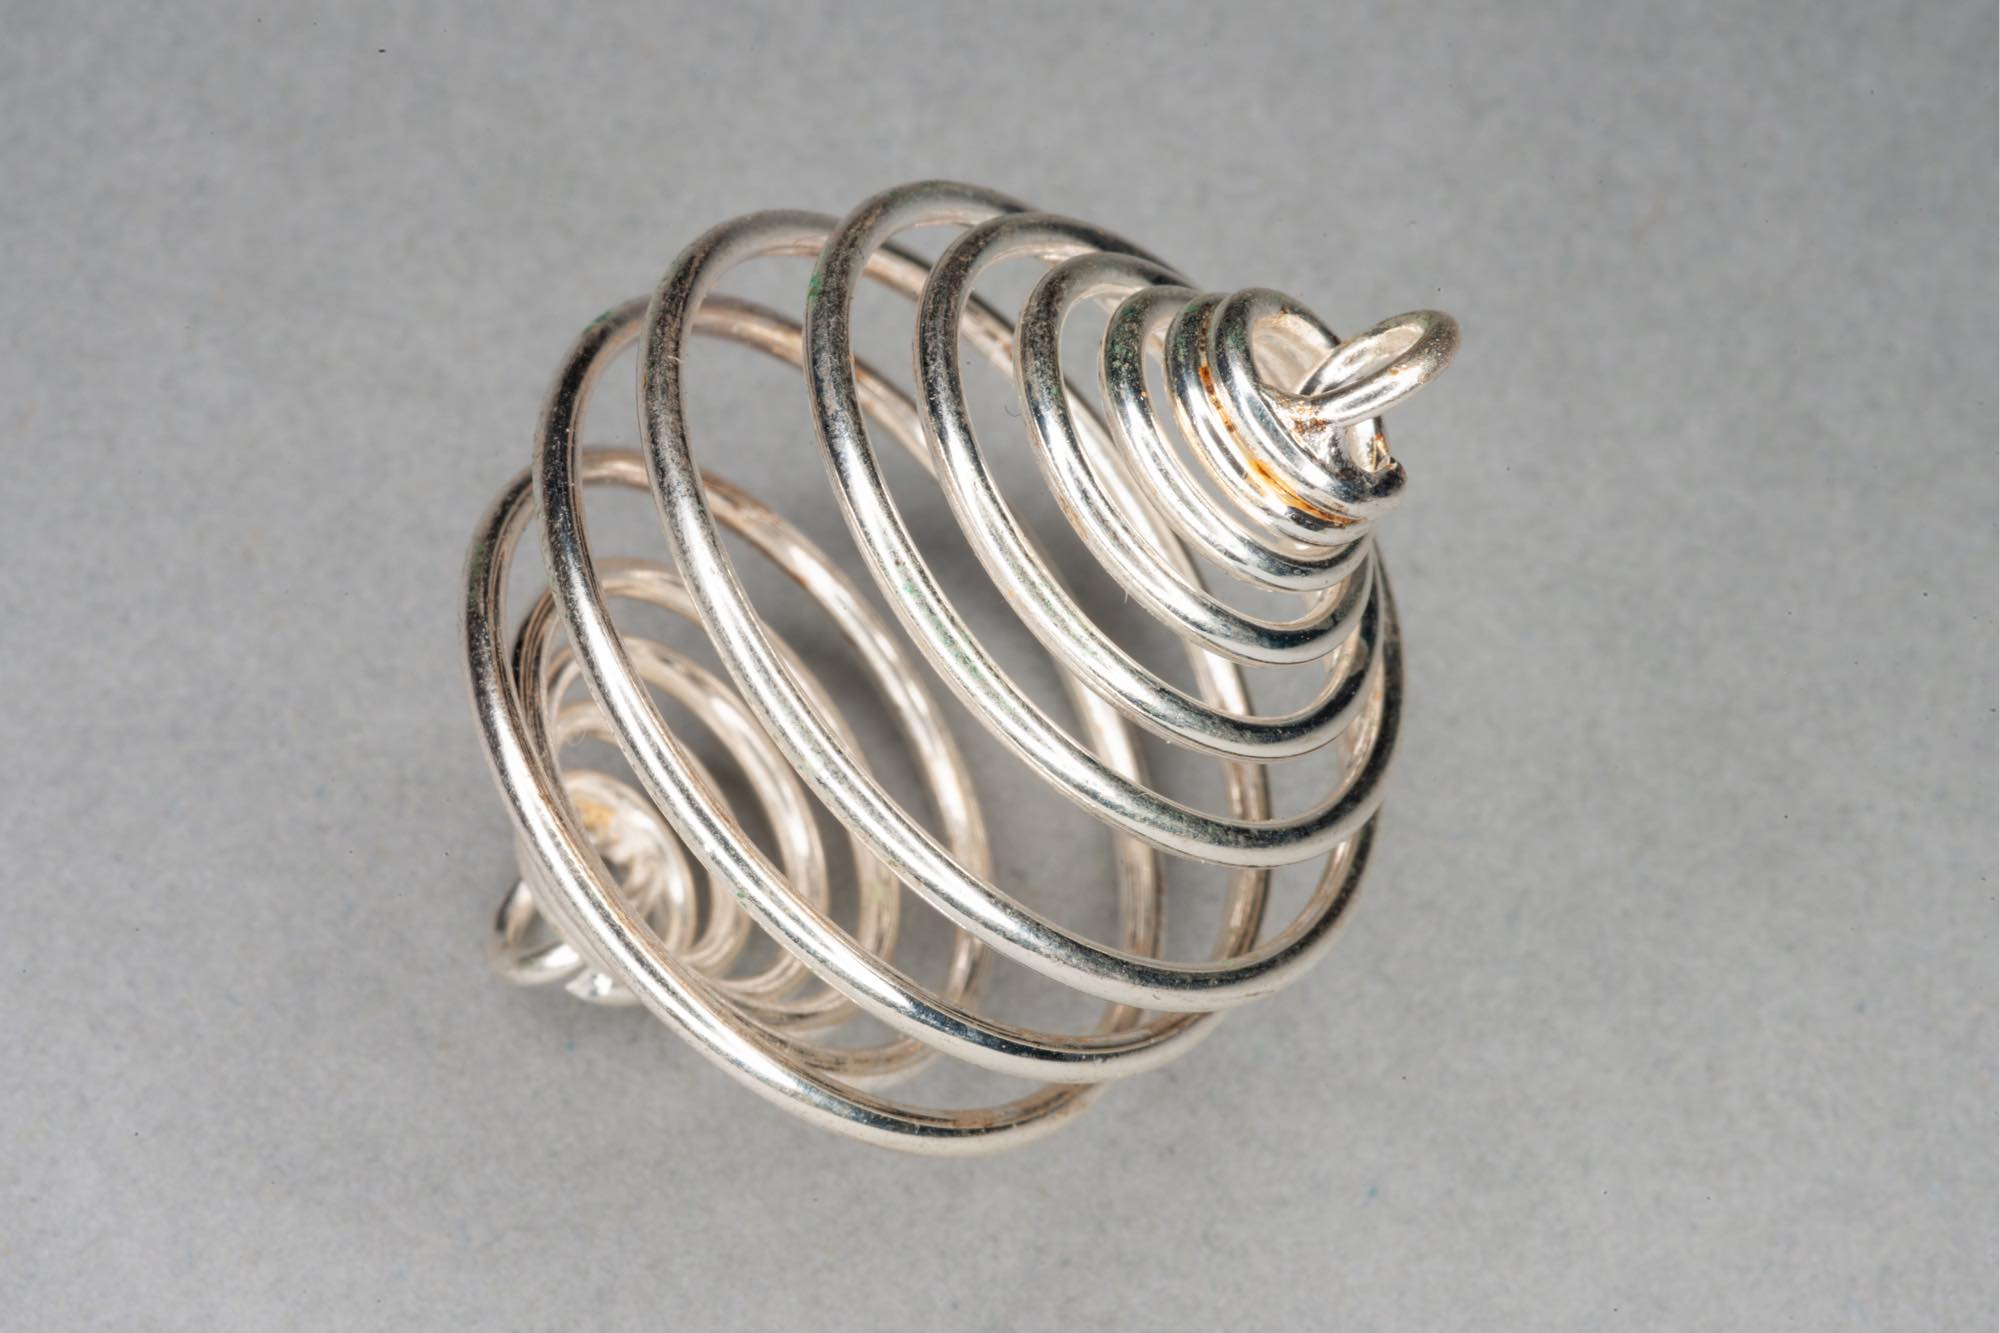 Silver Plated Spiral Metal Cage Bead, 2 End Loops 35x25mm